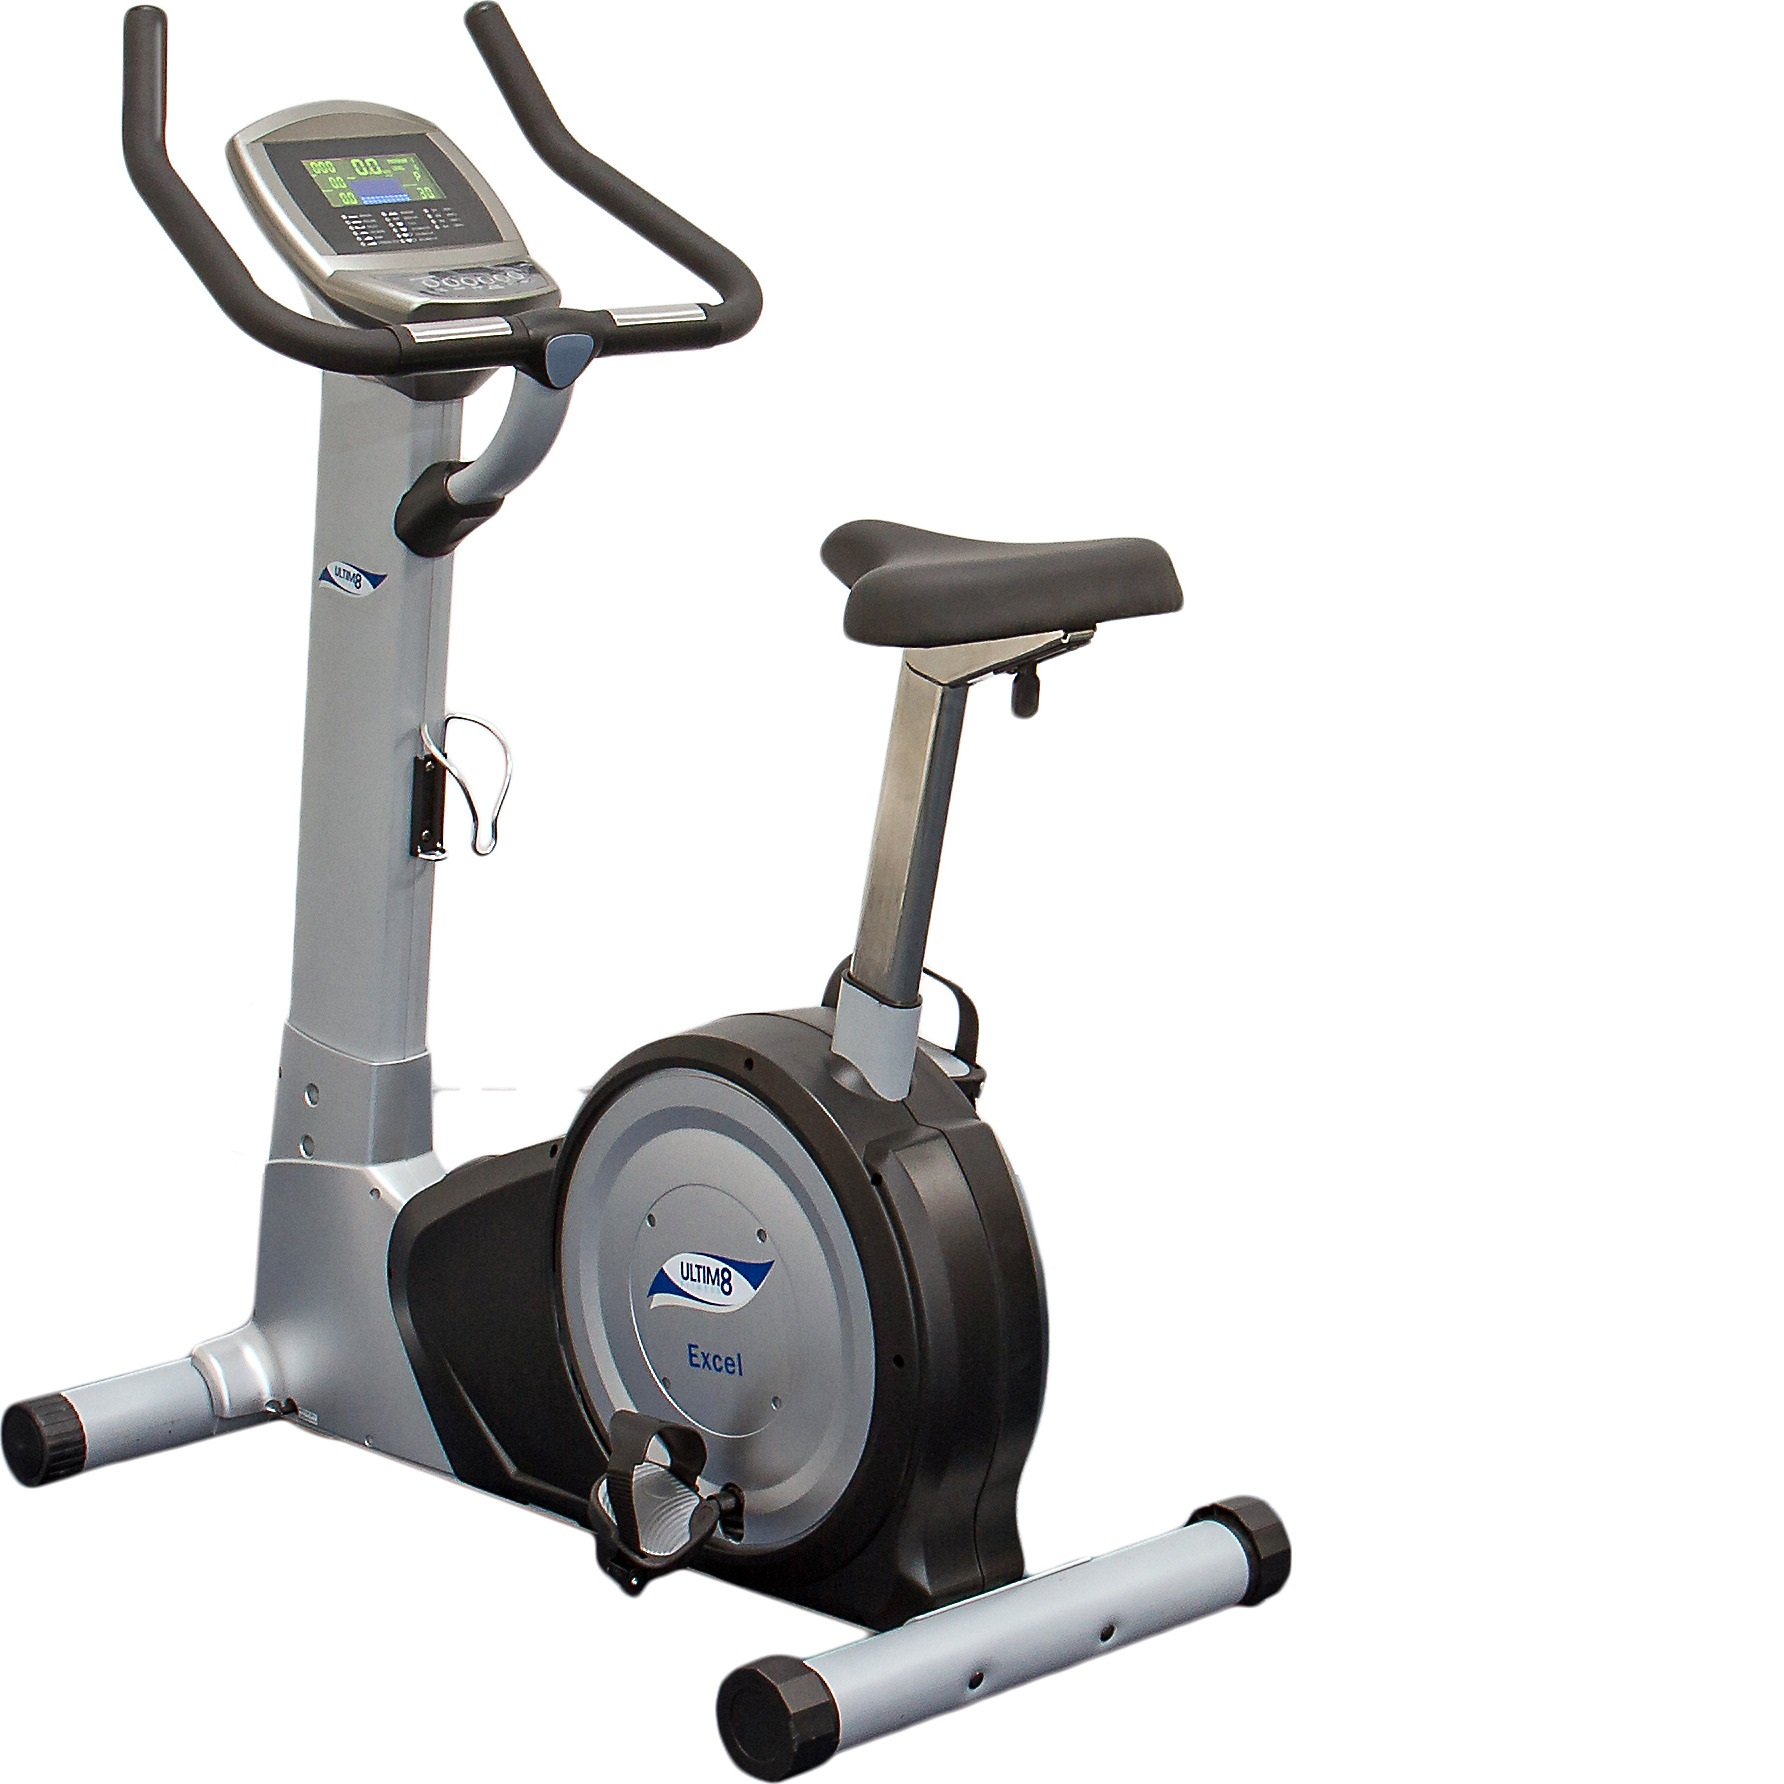 Hire deluxe home exercise bike